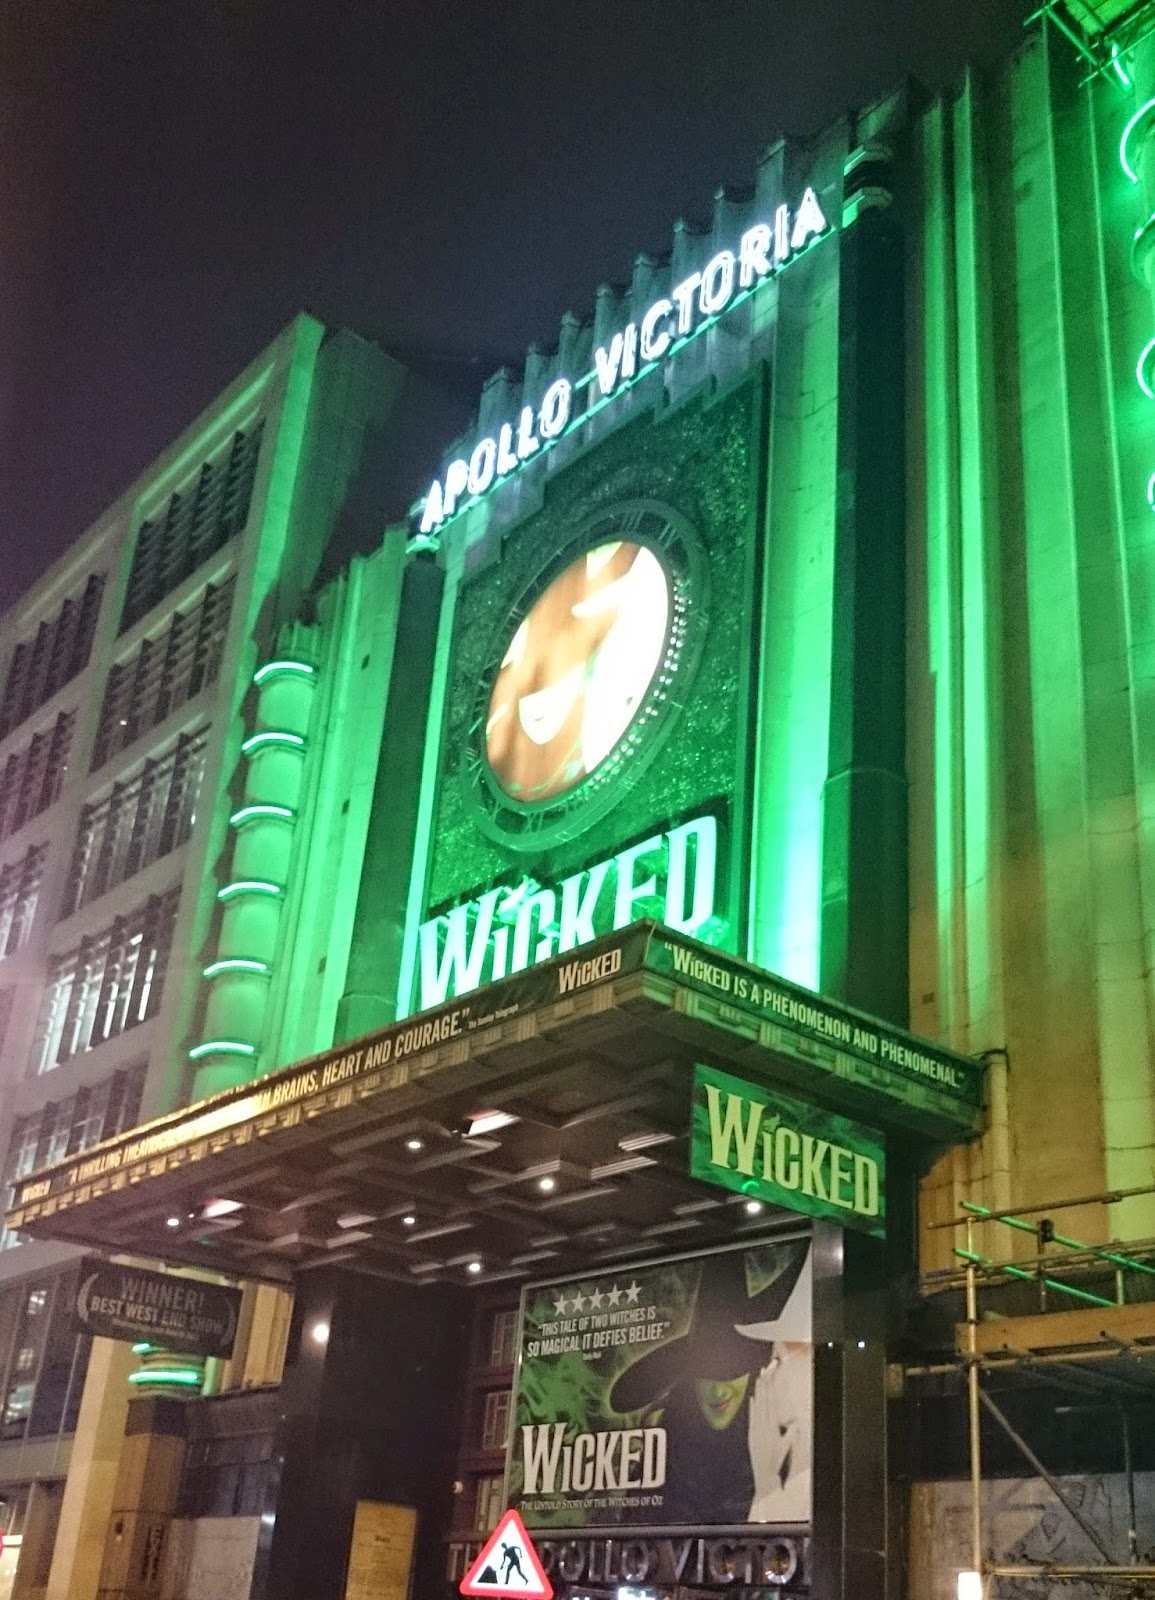 wicked apollo victoria london theatre show musical wizard of oz glinda elphaba witch